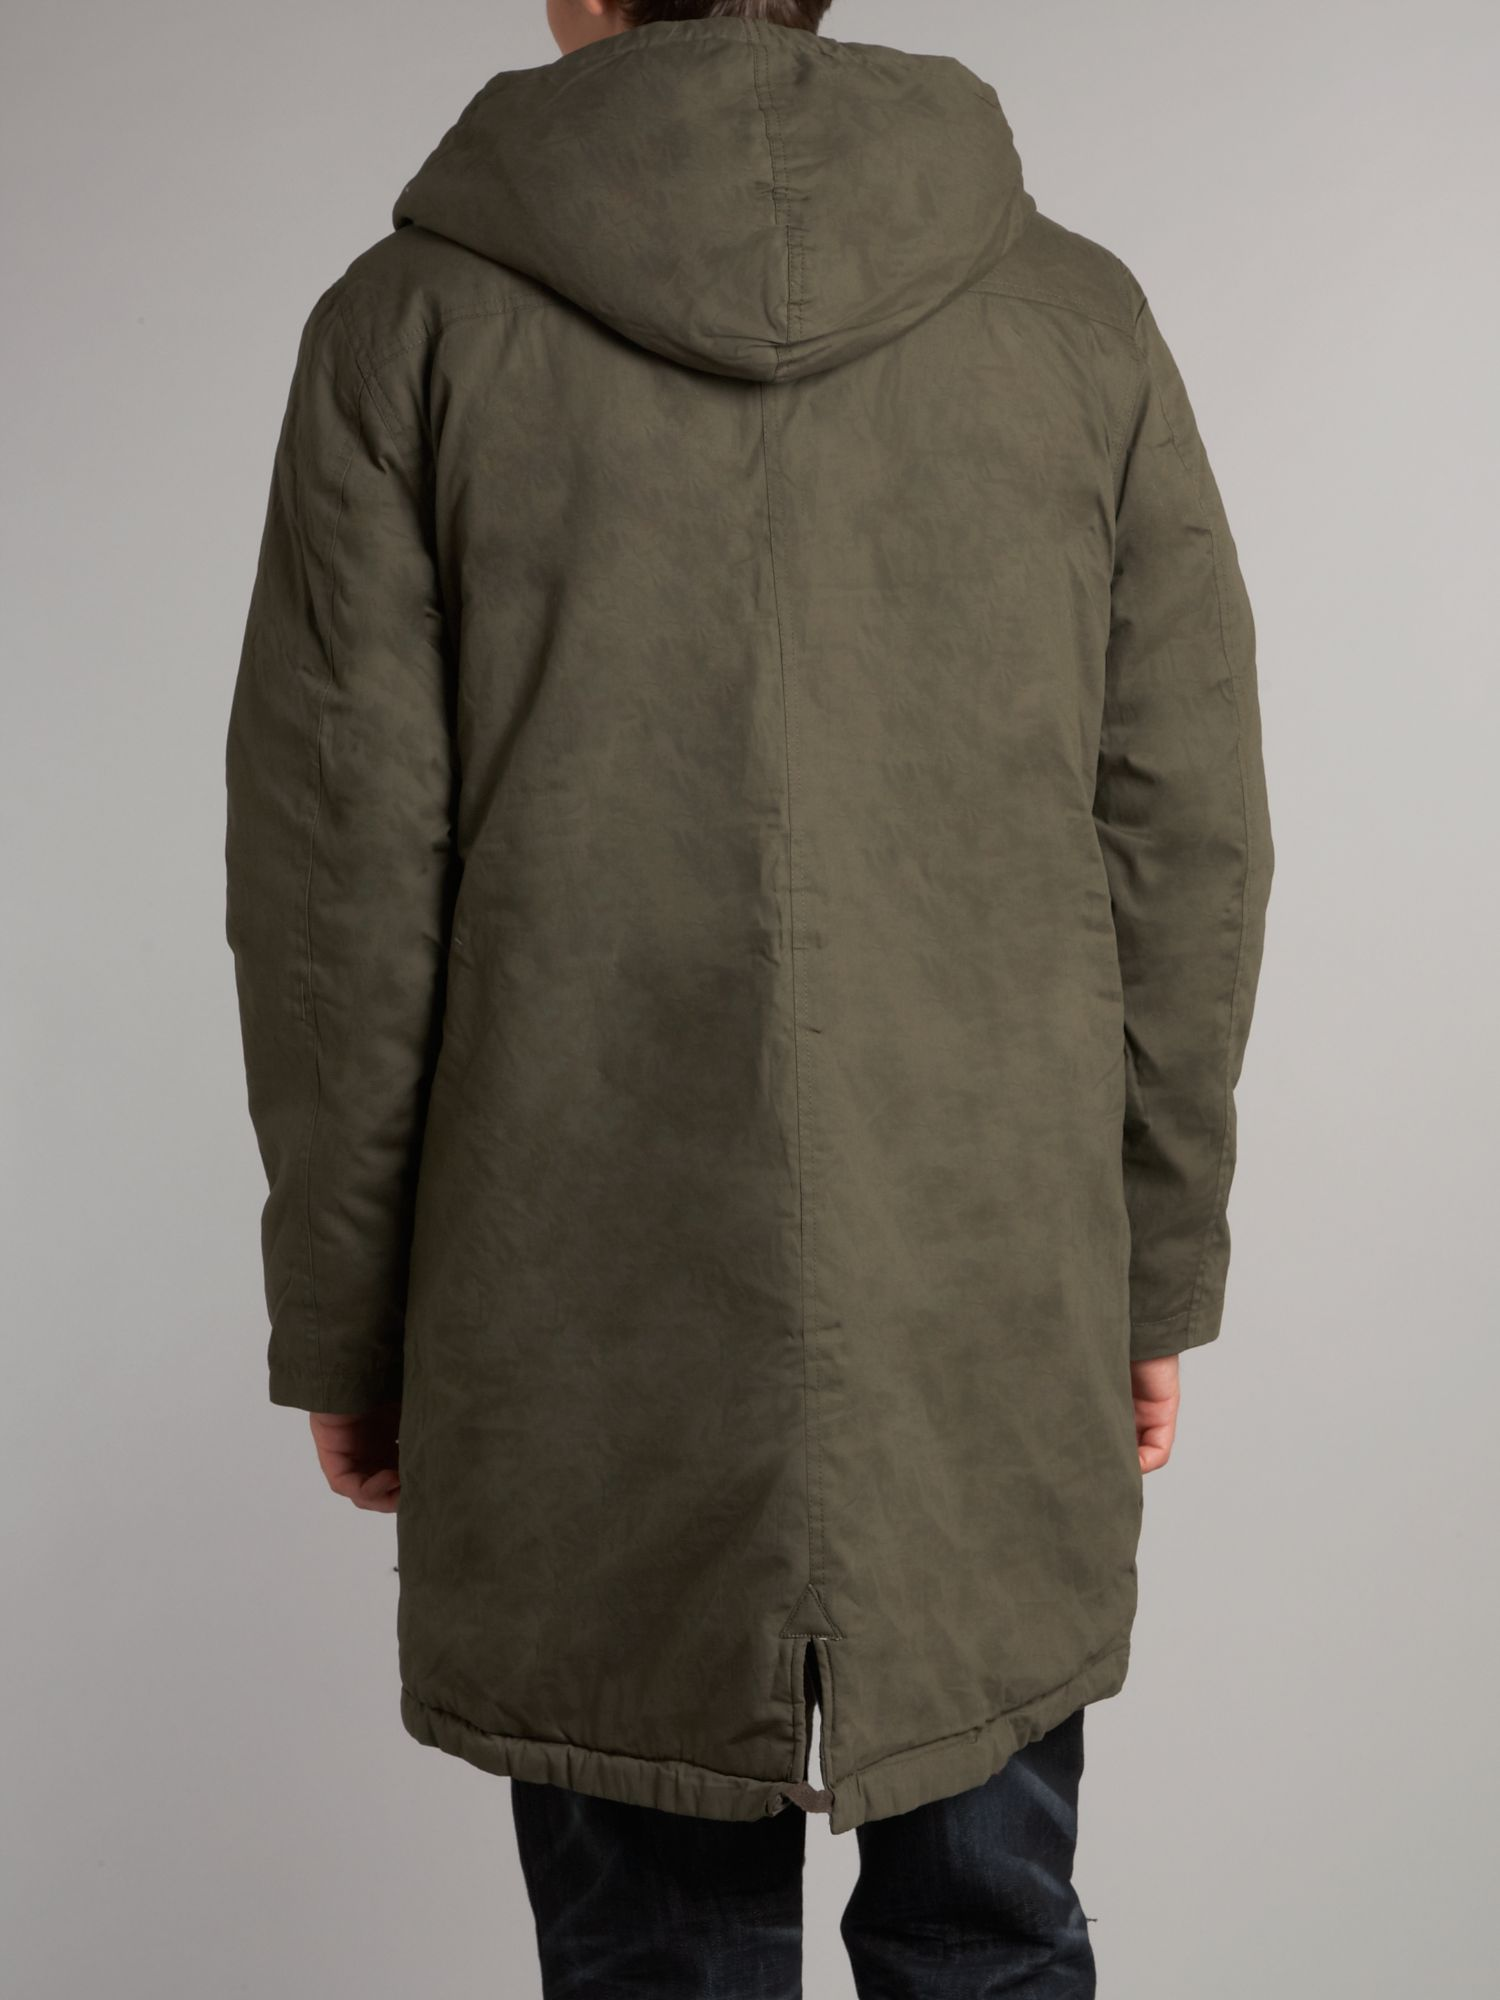 Cheap monday Parka Jacket in Green for Men   Lyst